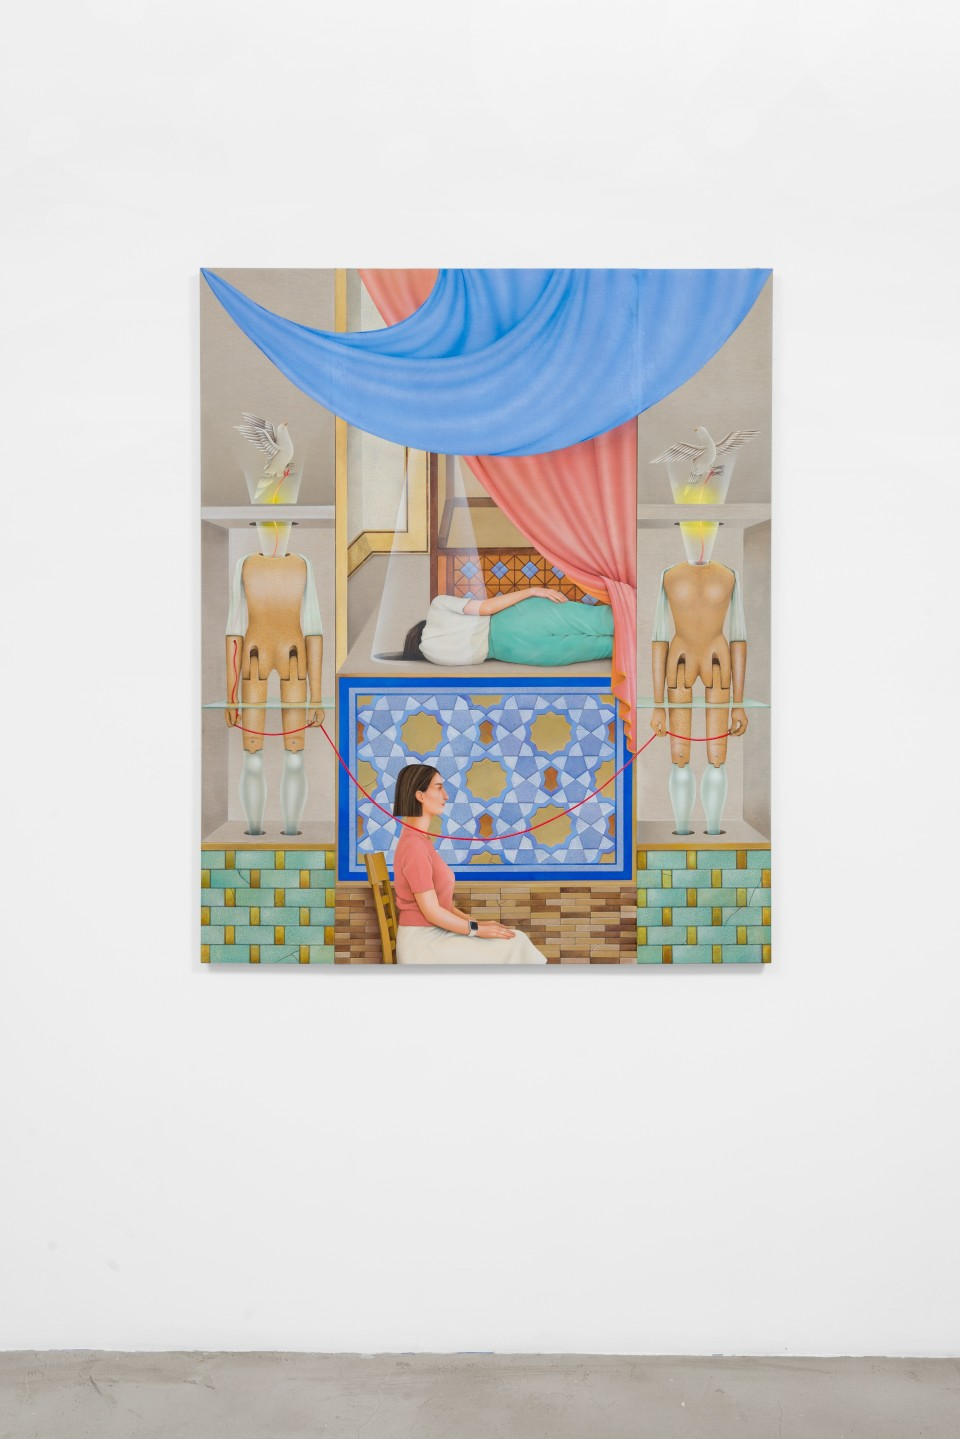 Image: Arghavan Khosravi  Presence of Others, 2019  signed and dated verso  acrylic on canvas and linen mounted on wood panels  55 x 45 inches (139.7 x 114.3 cm)